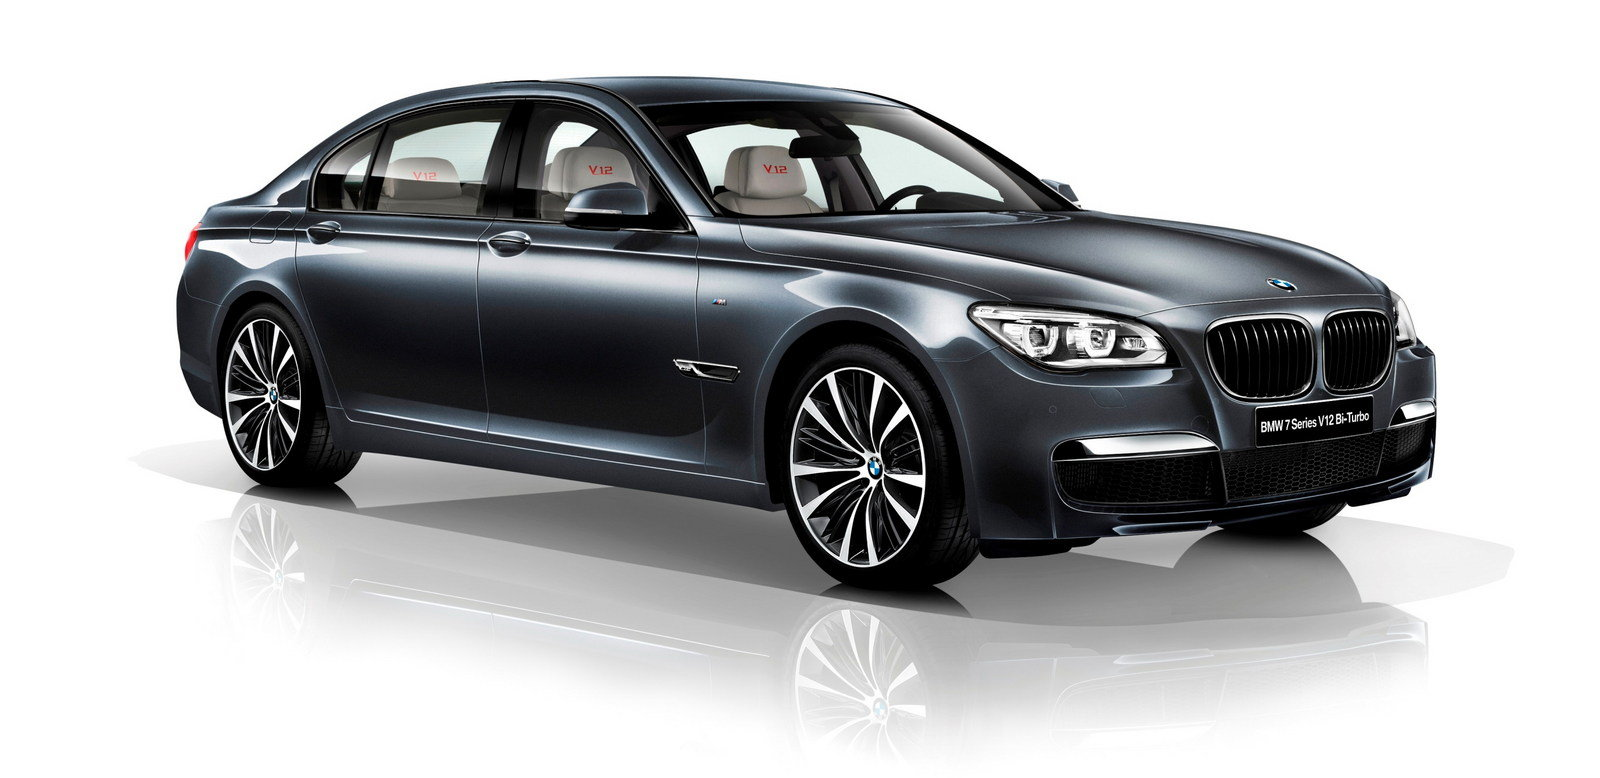 2013 bmw 7 series v12 bi turbo special edition review top speed. Black Bedroom Furniture Sets. Home Design Ideas